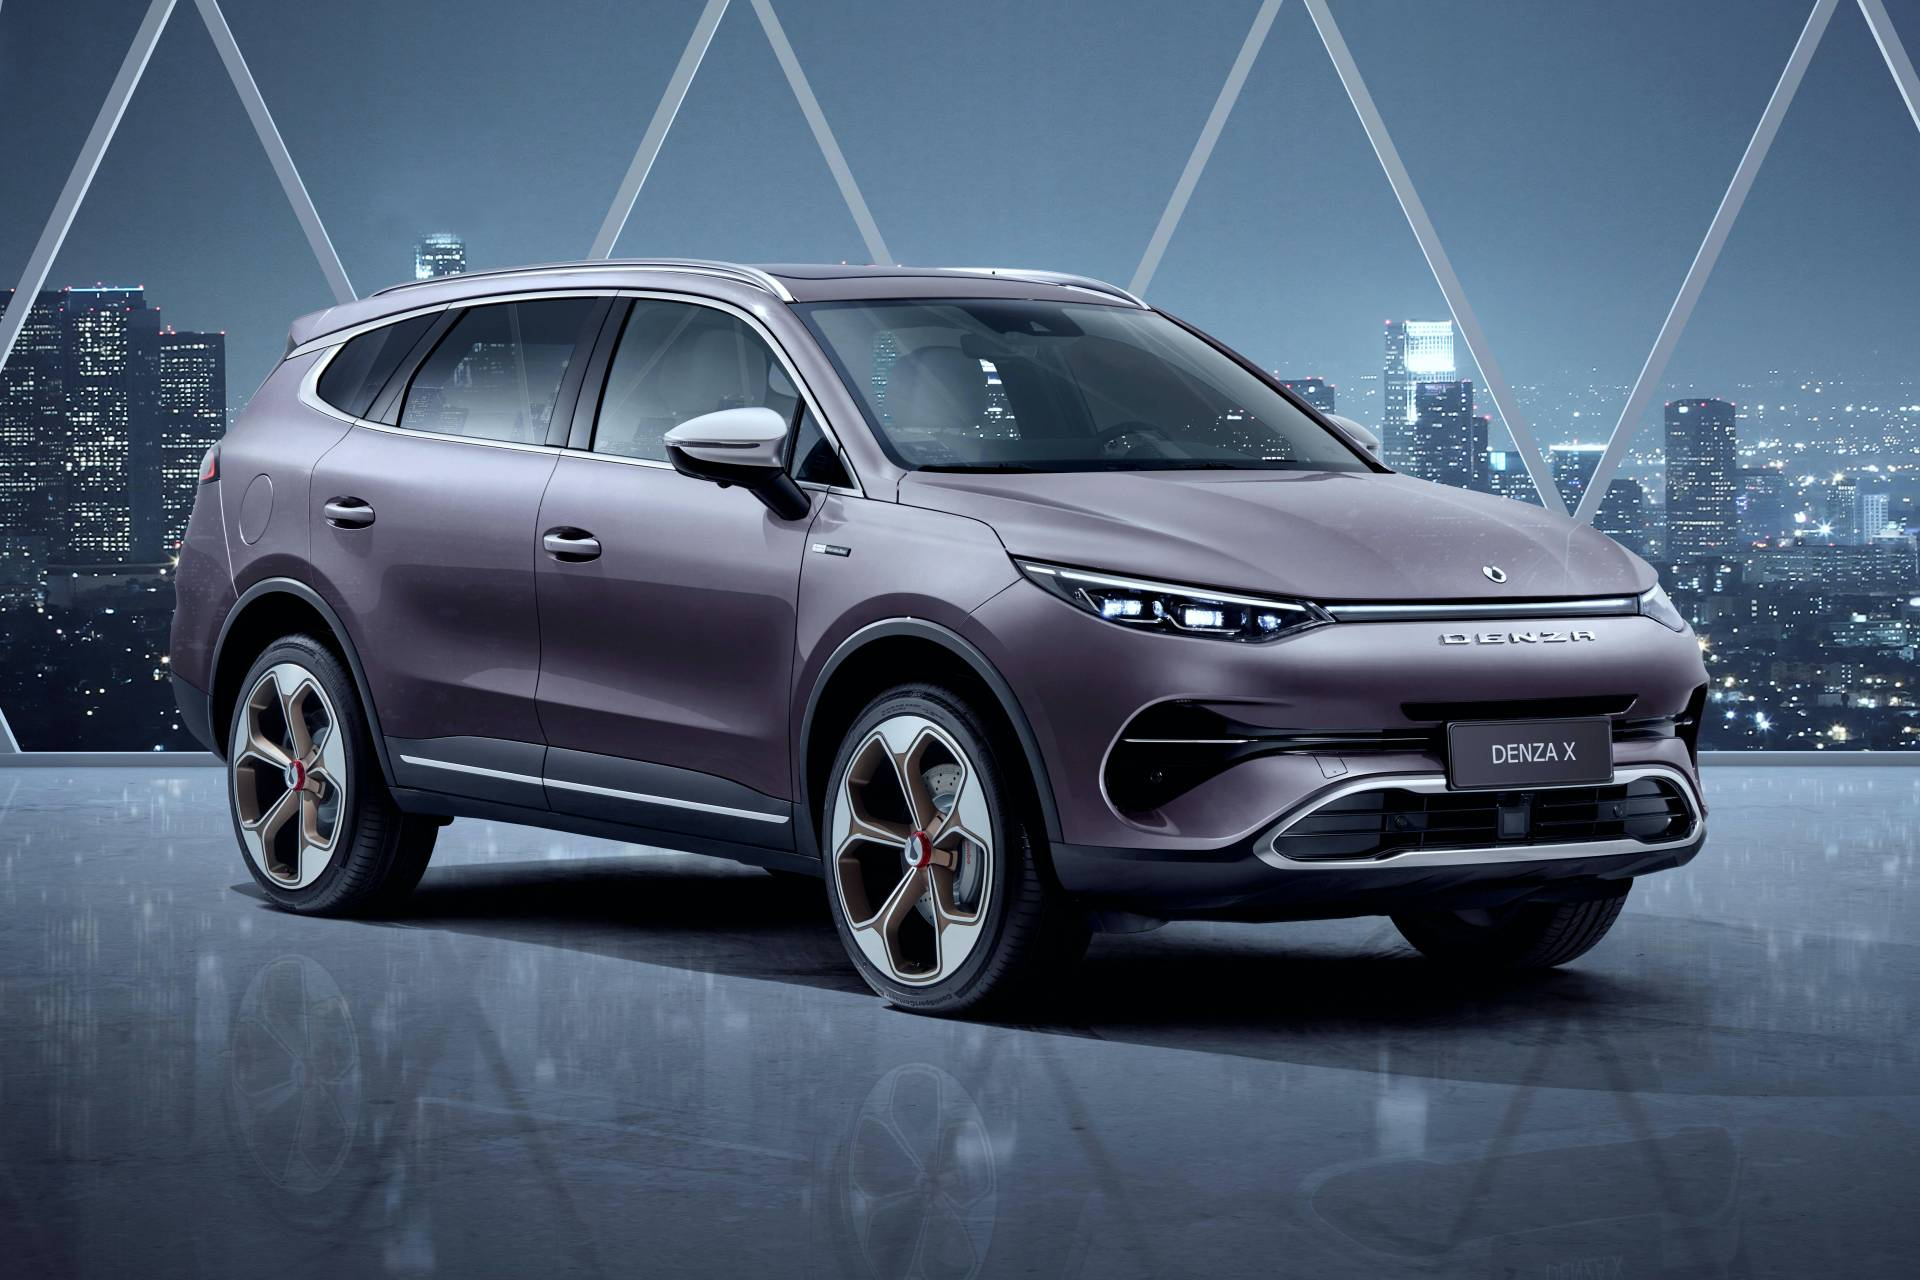 German Daimler AG and Chinese automaker BYD founded the Denza marque nine years ago, but with the X SUV being its only surviving representative now, perhaps time has come to wave it goodbye.